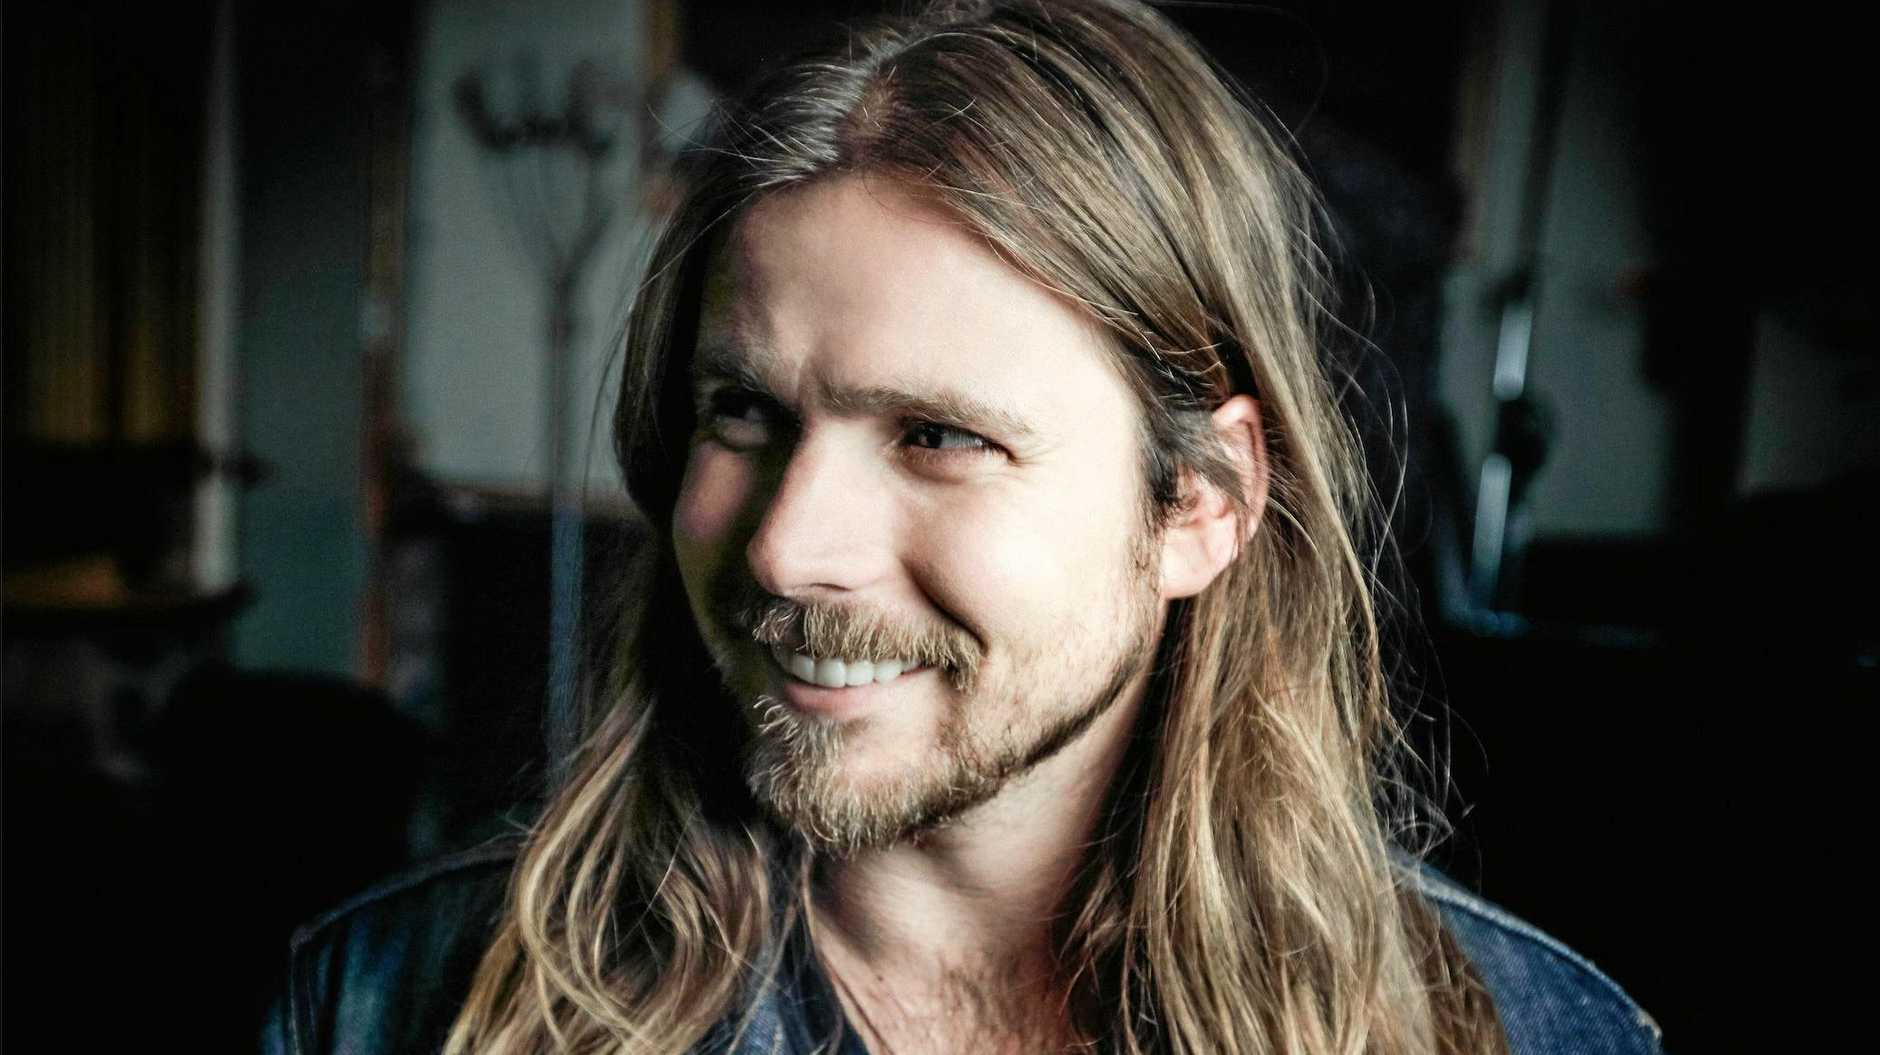 FATHER'S FOOTSTEPS: Country rock musician Lukas Nelson, the son of music legend Willie Nelson, is coming to Bluesfest in Byron Bay.